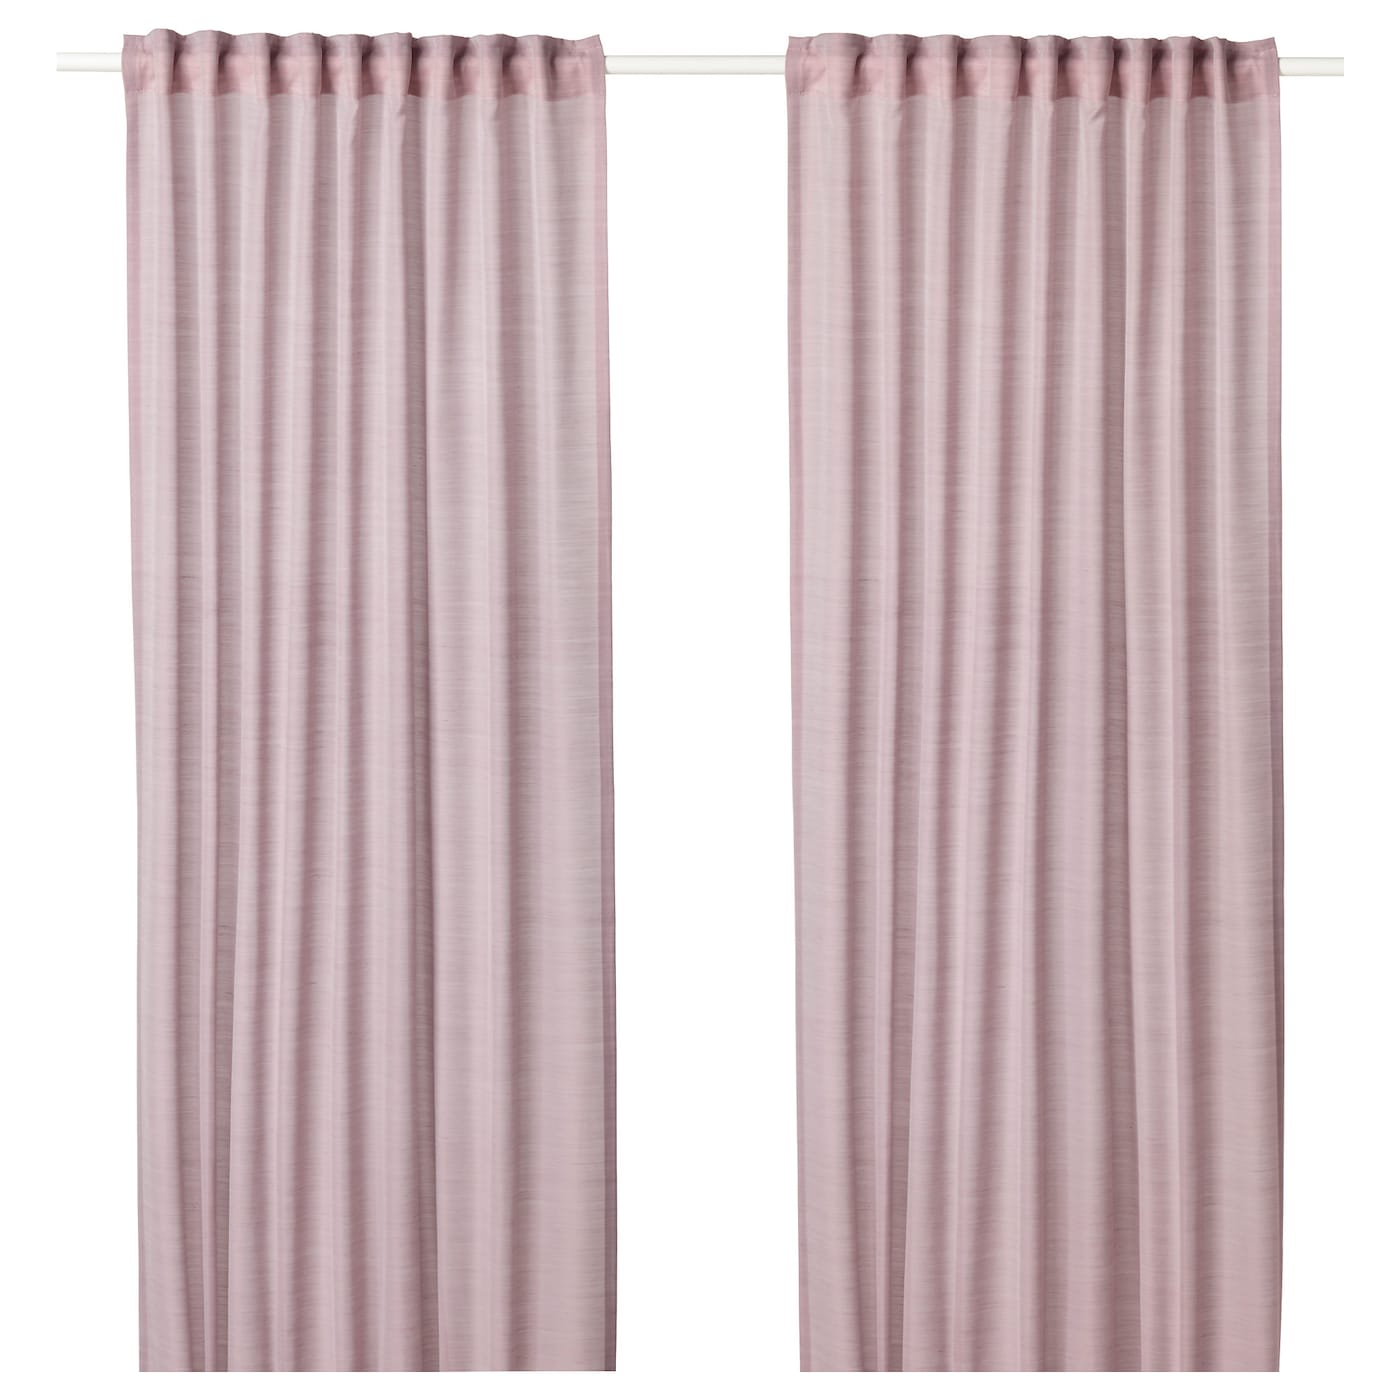 HILJA Curtains 1 pair Pink 145x250 cm IKEA